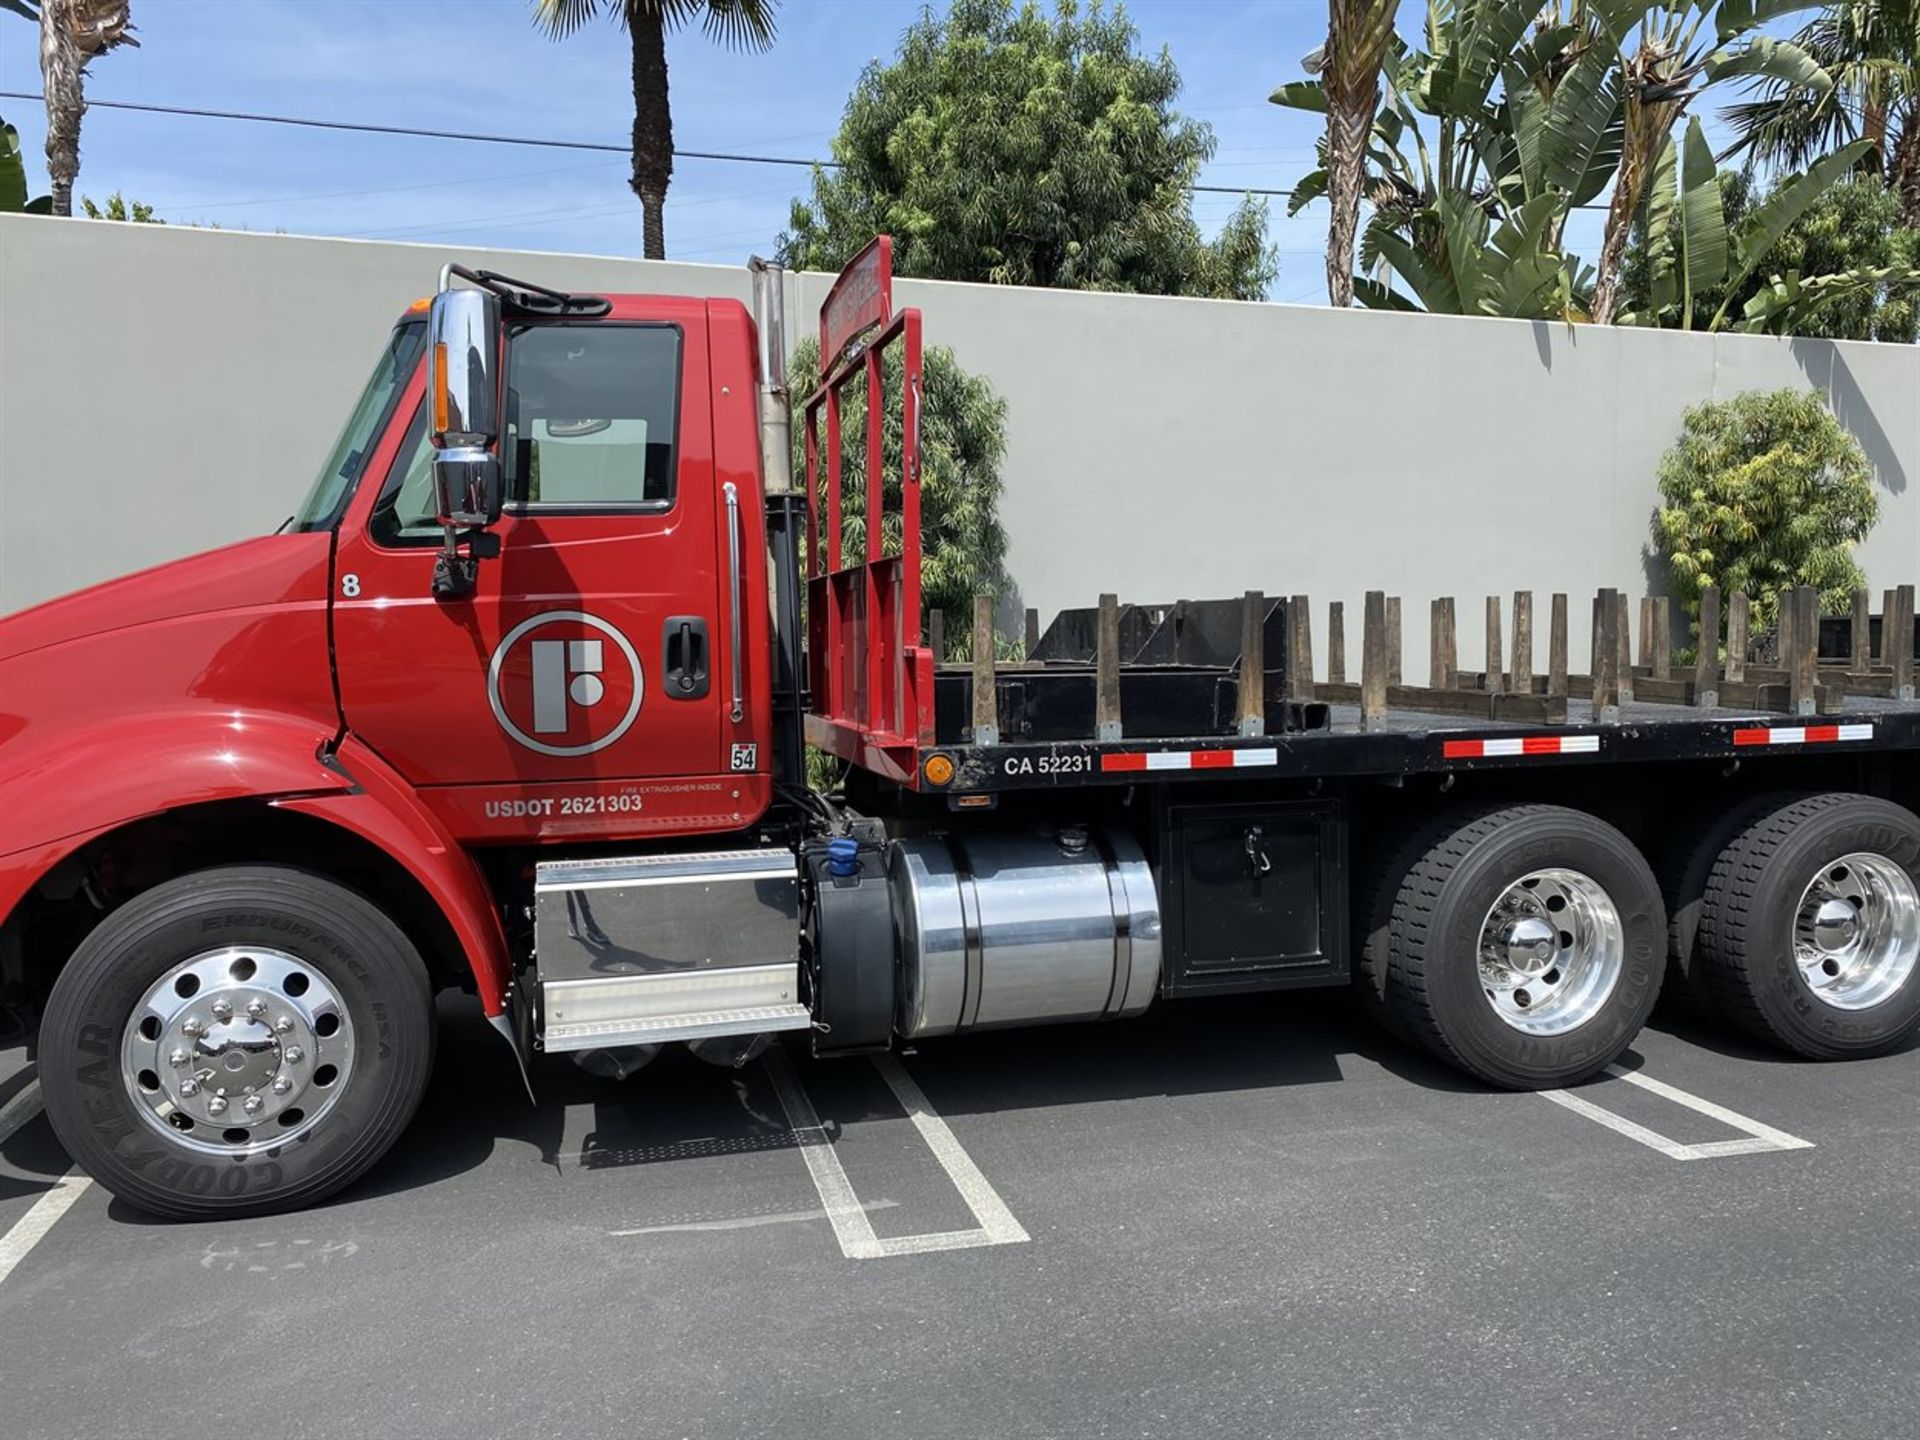 2016 INTERNATIONAL 18' Stake Bed Truck, VIN 3HTHXSNR1GN003236, 125,809 Miles at time of inspection - Image 3 of 20